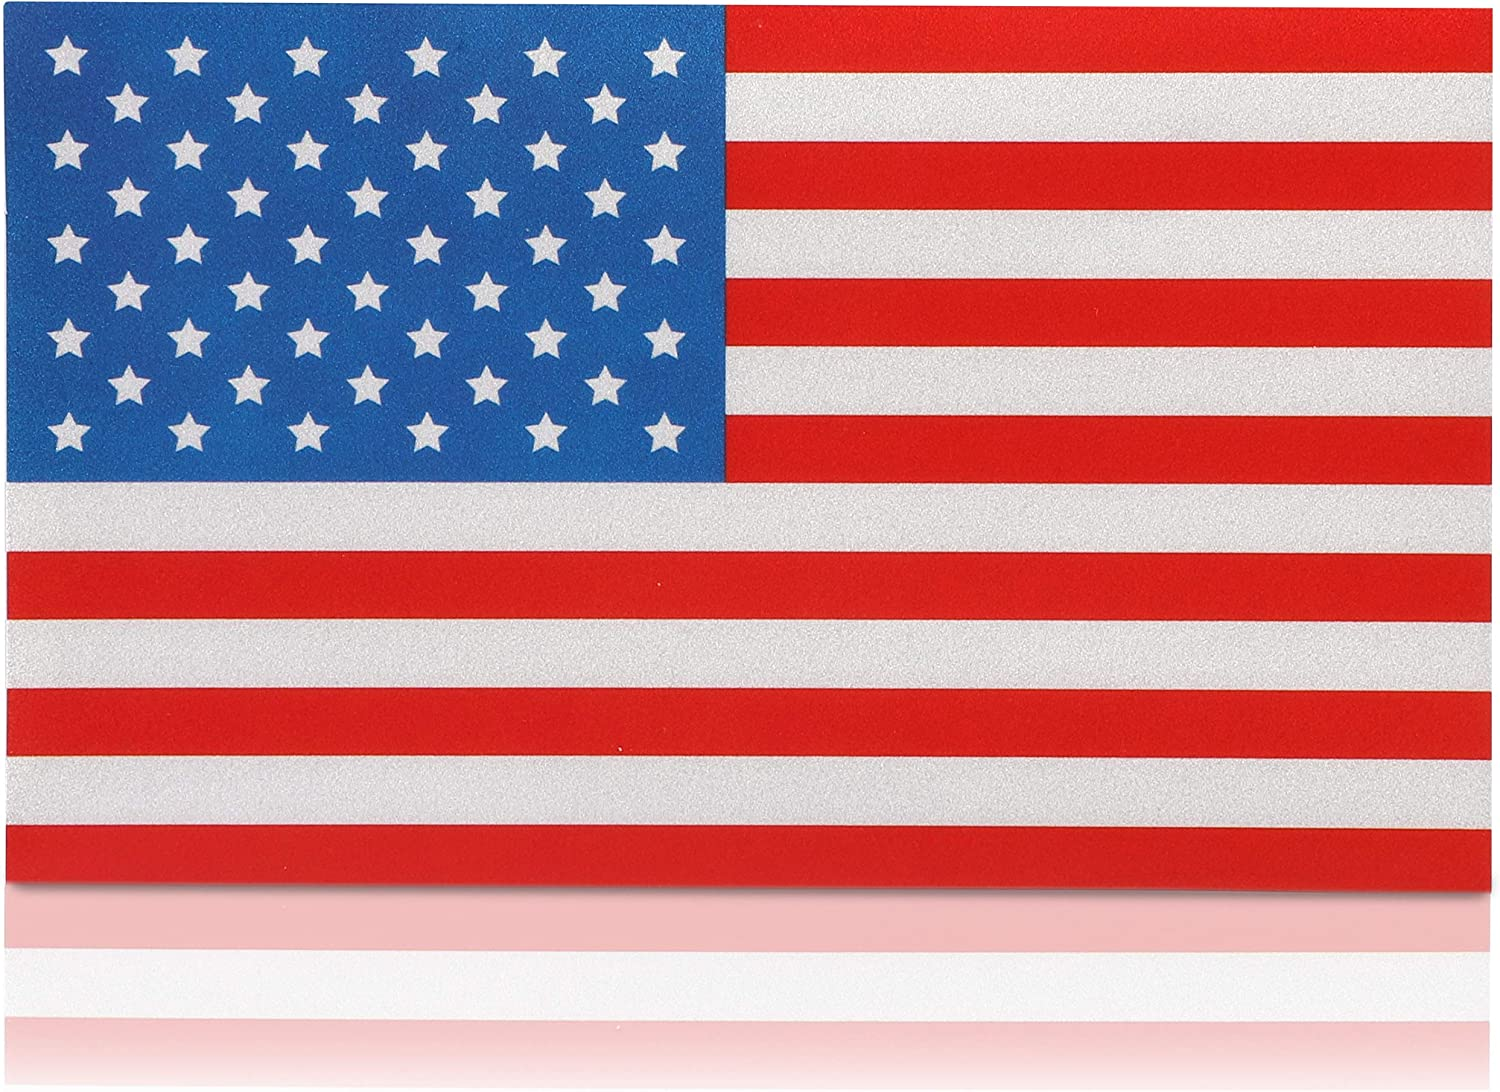 American Flag Stickers 5 x 3 in, 8 Pack